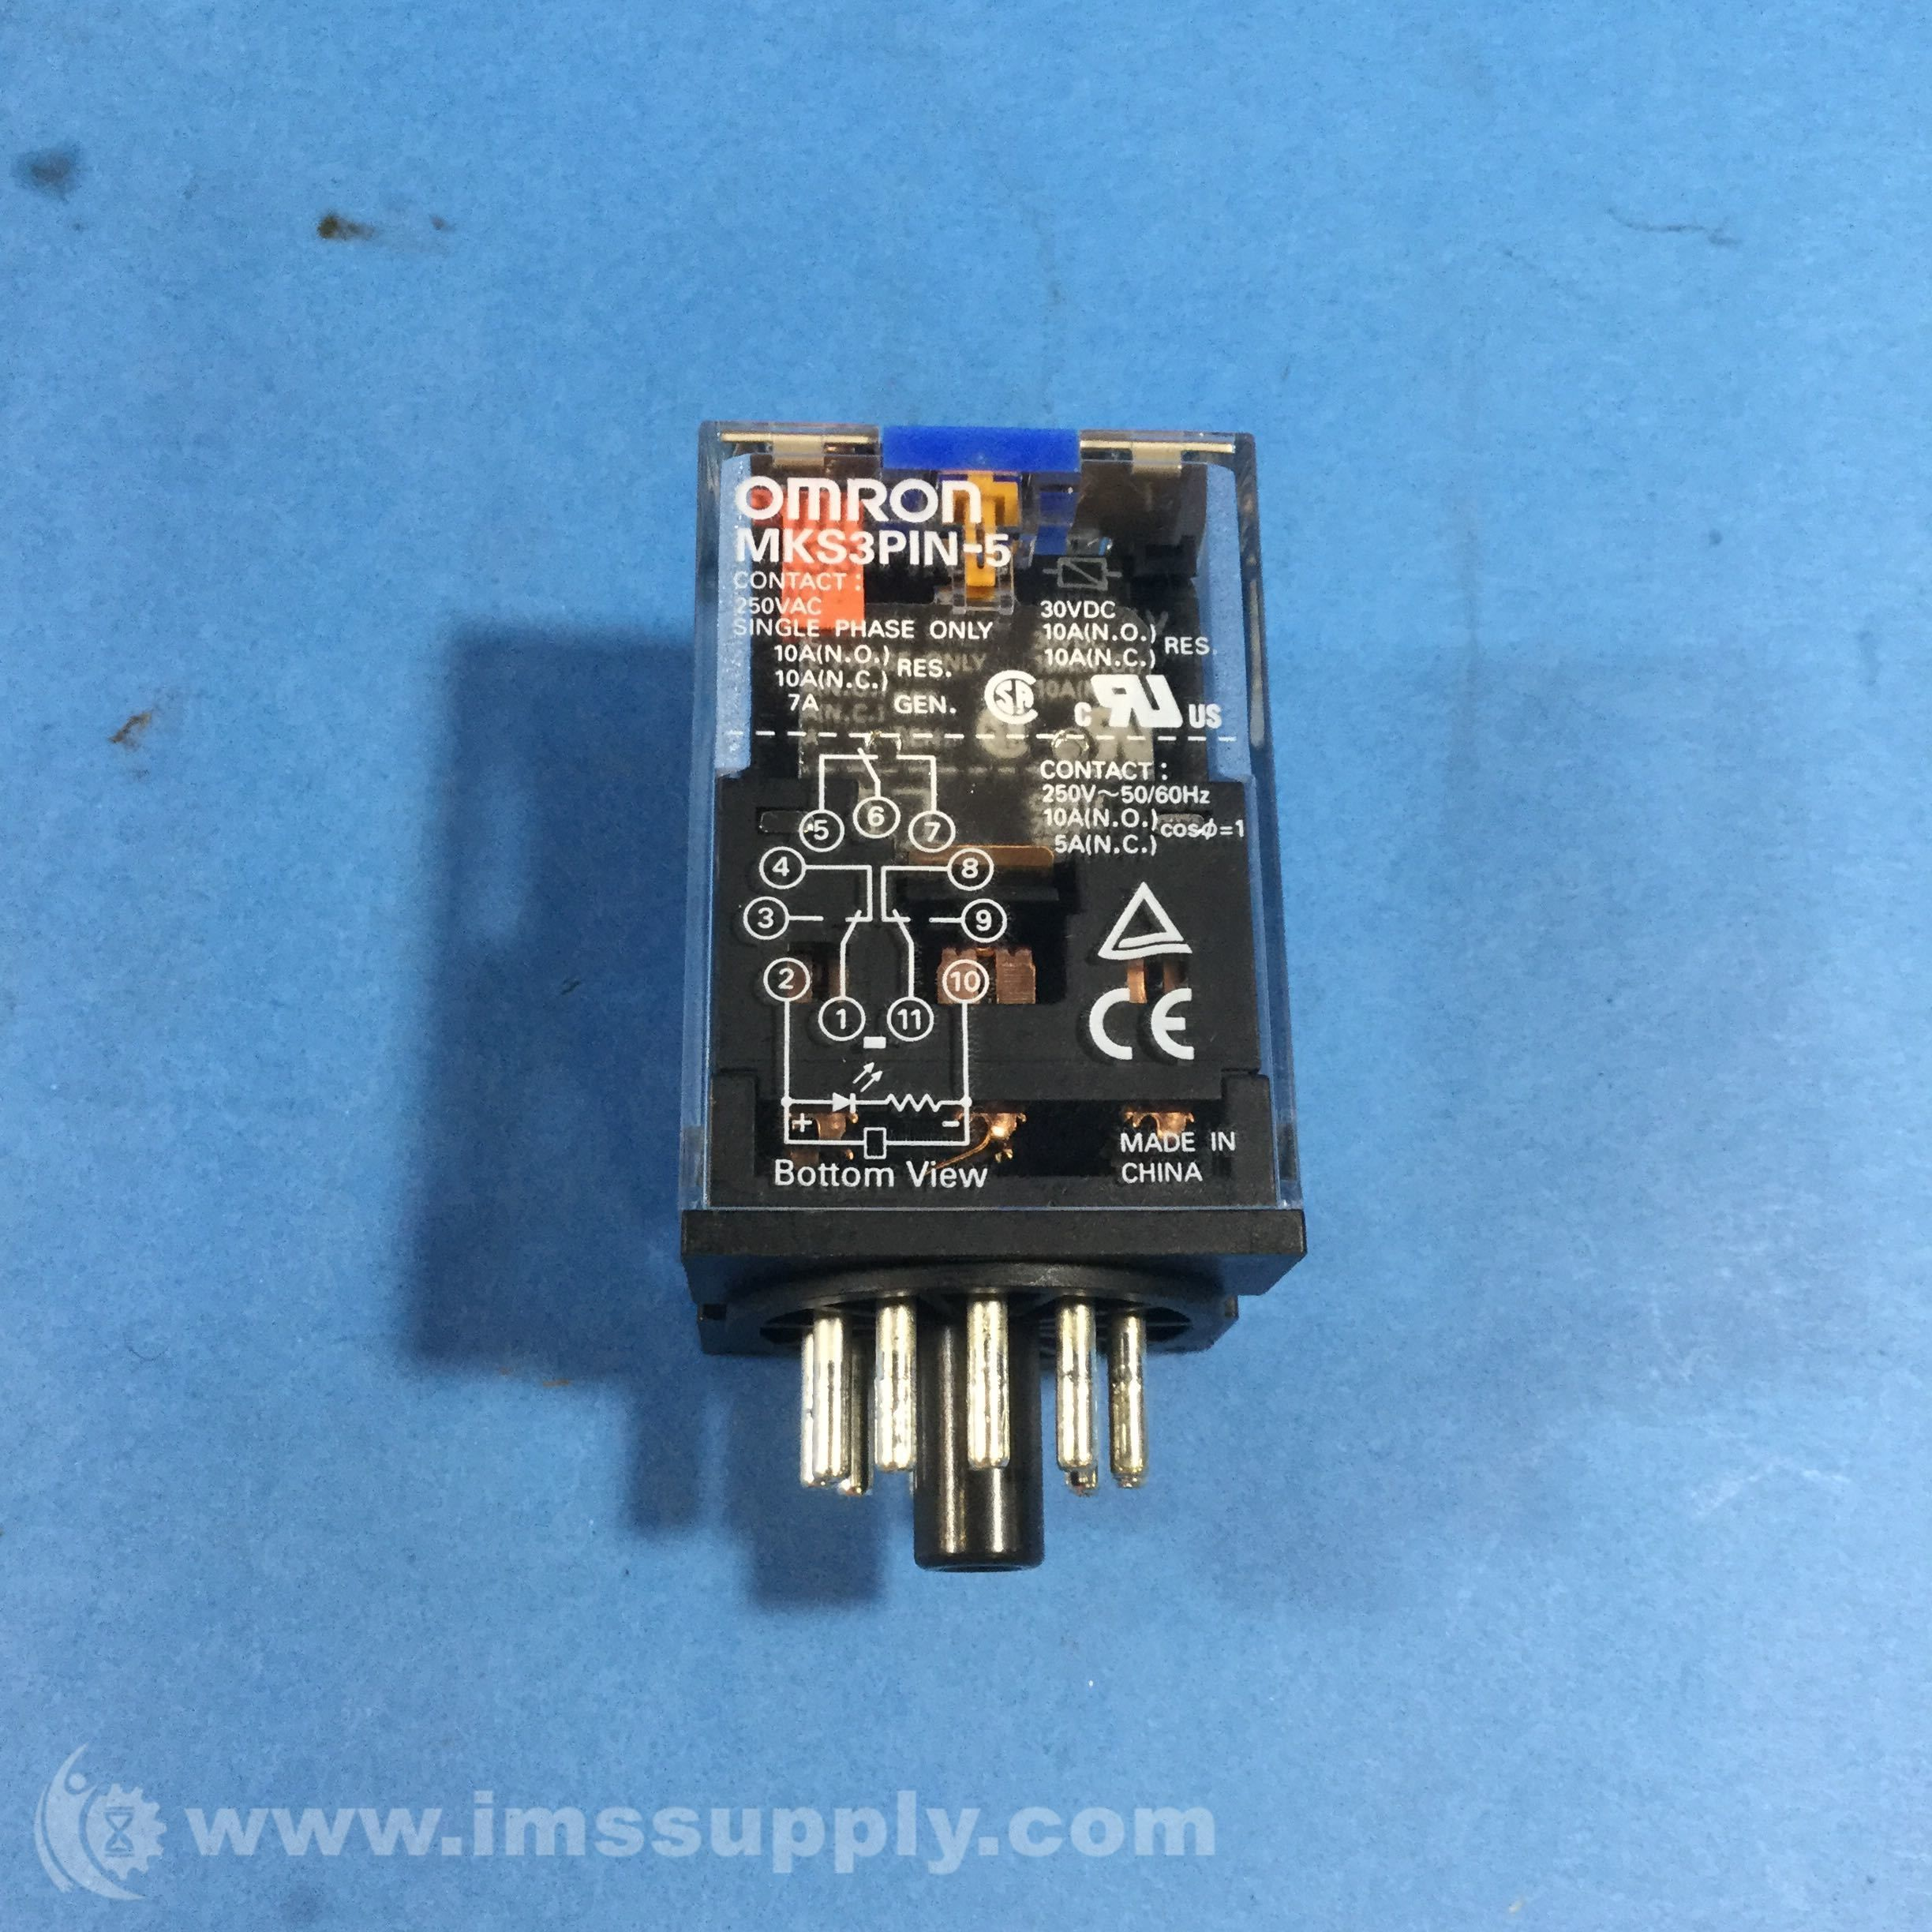 OMRON MKS3PIN5 RELAY (With images) Relay, Electrical